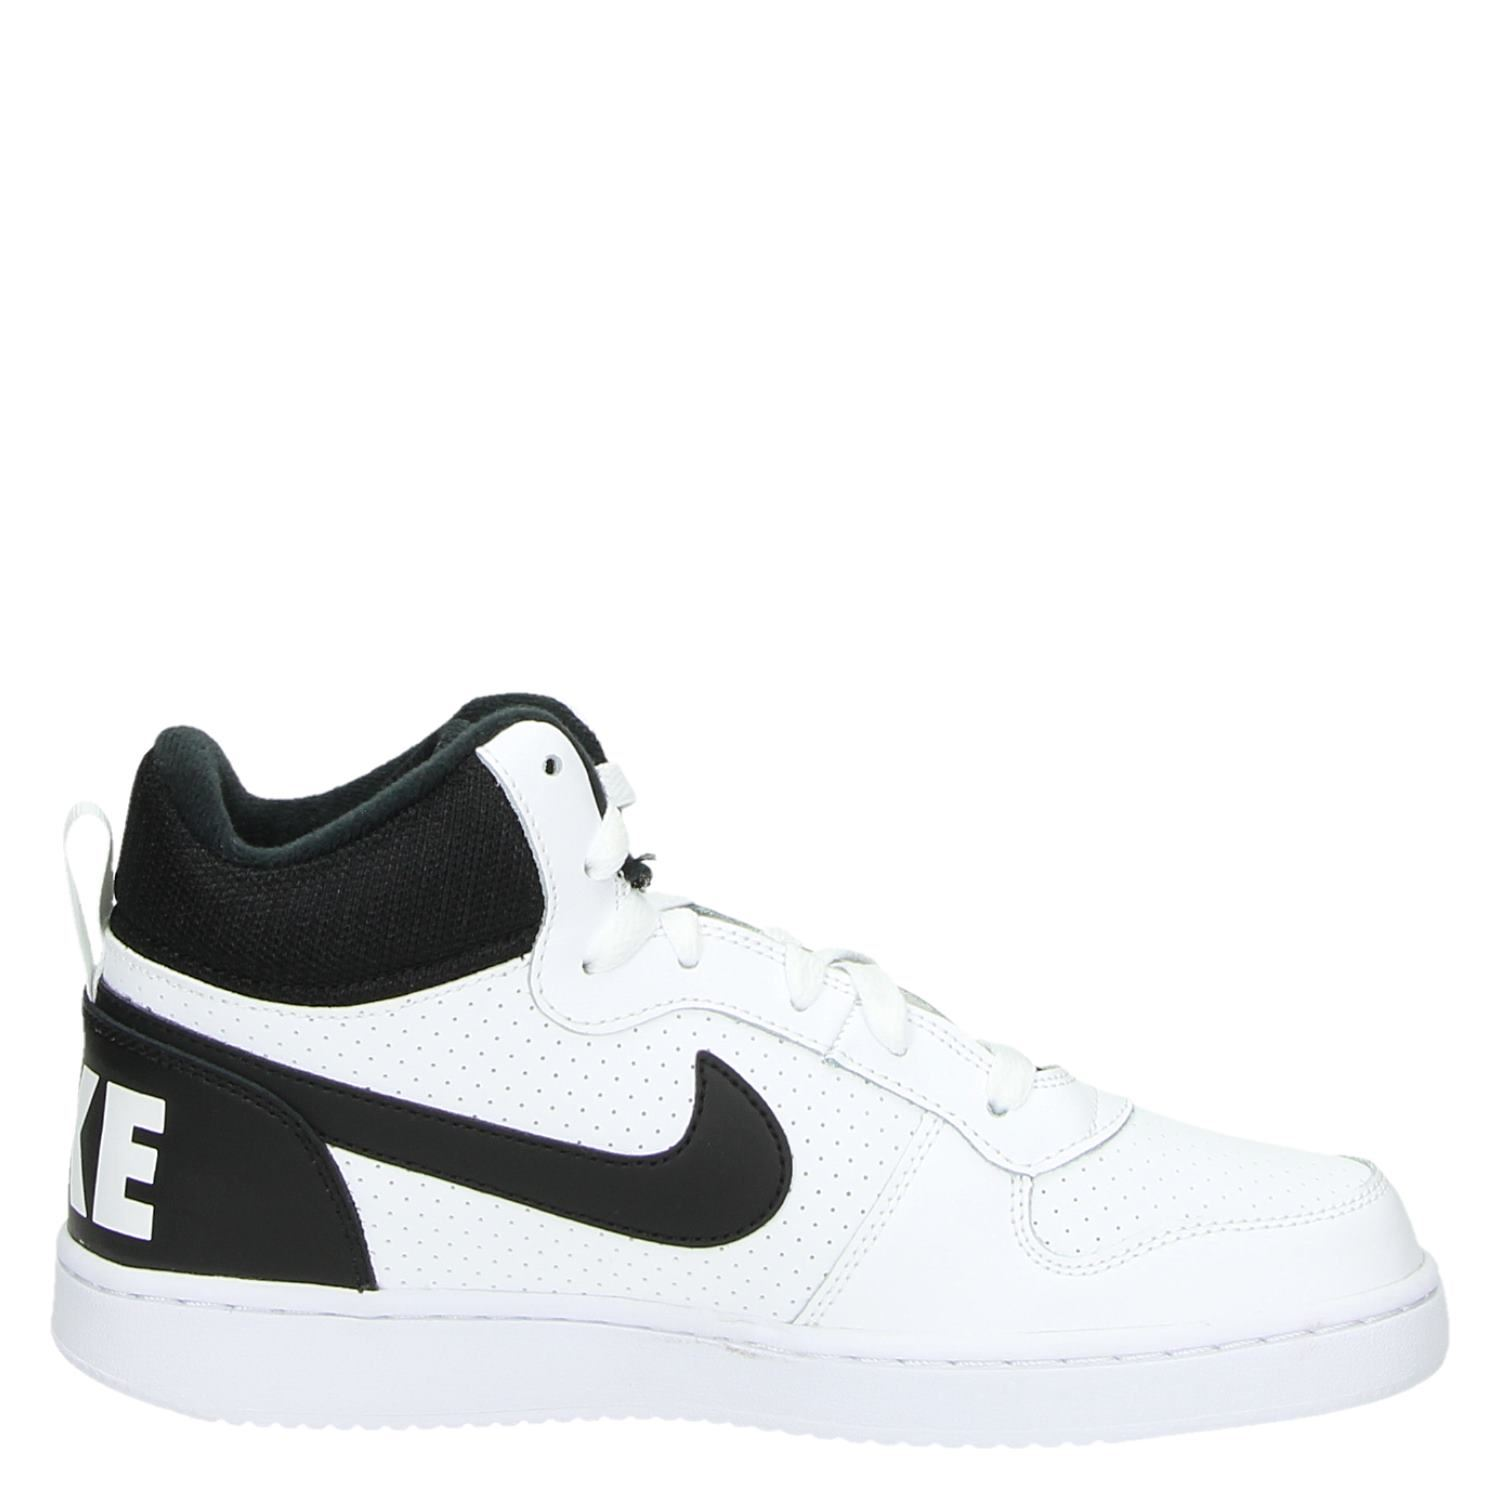 Nike Sneakers Boys bianche Sneakers Nike Sneakers bianche Boys bianche Boys Nike 8O6qawA